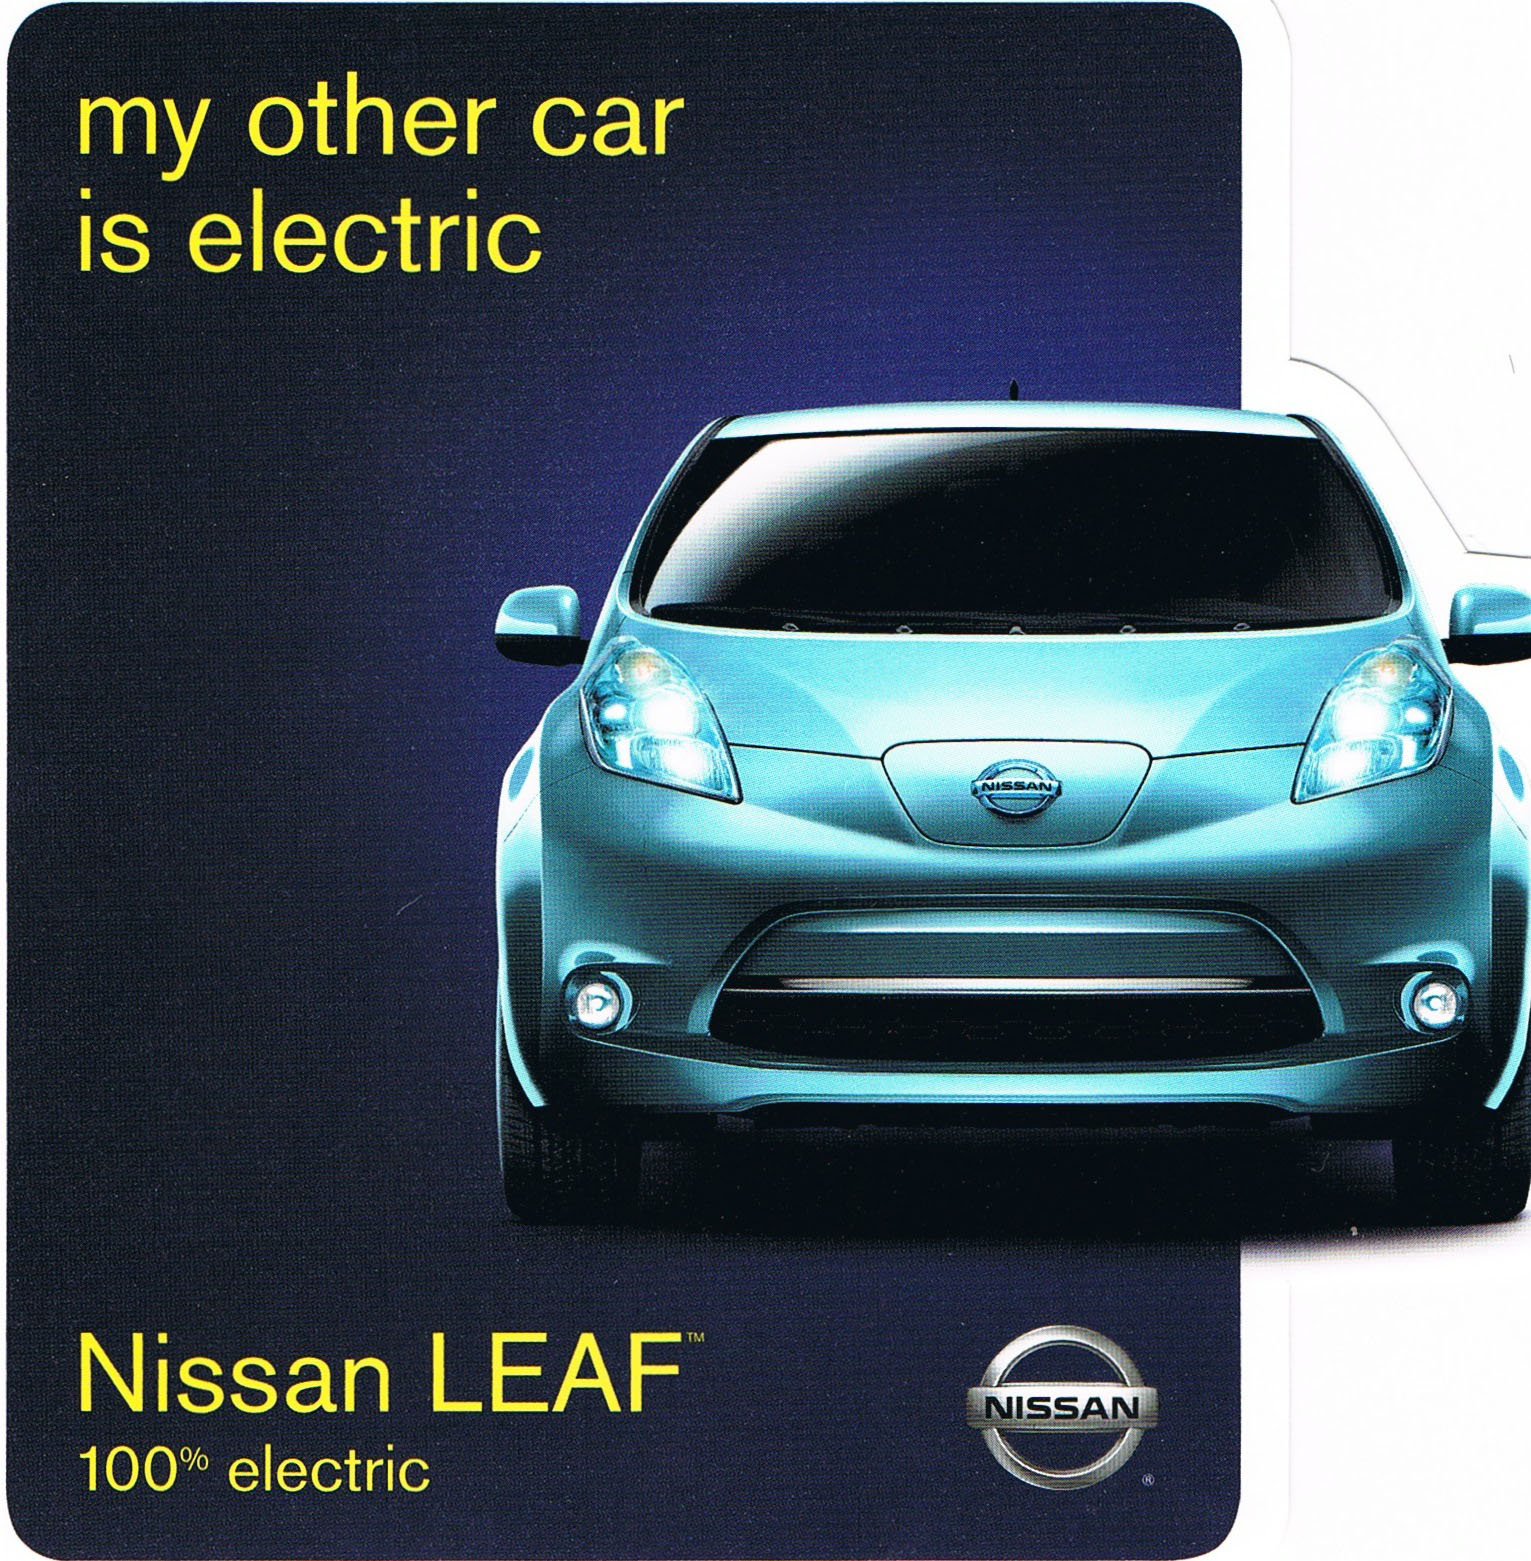 2011 Nissan Leaf: While You Wait, Have Some Stickers